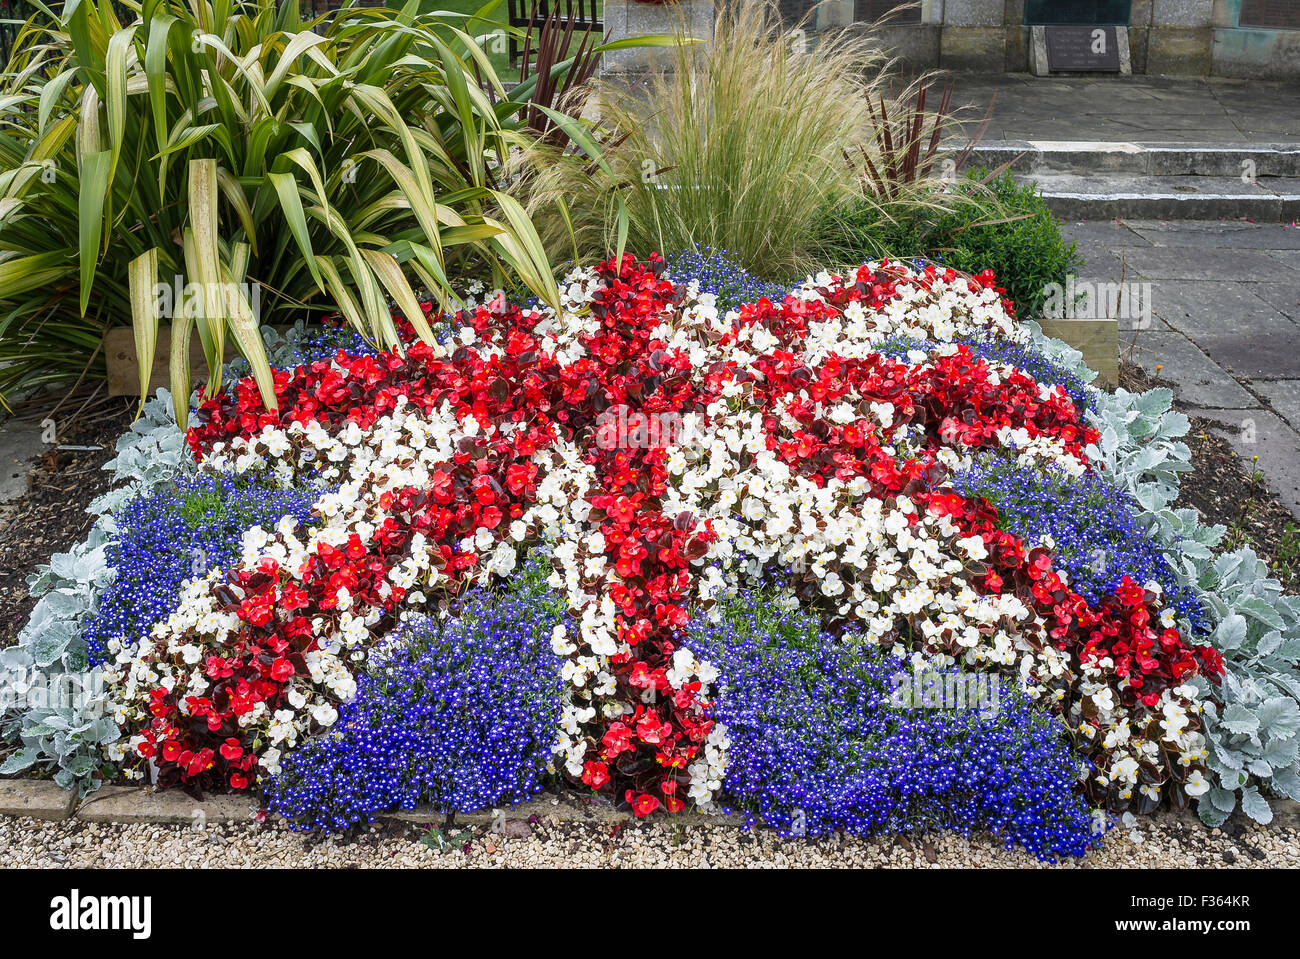 Red White Blue Flowers Flag High Resolution Stock Photography And Images Alamy